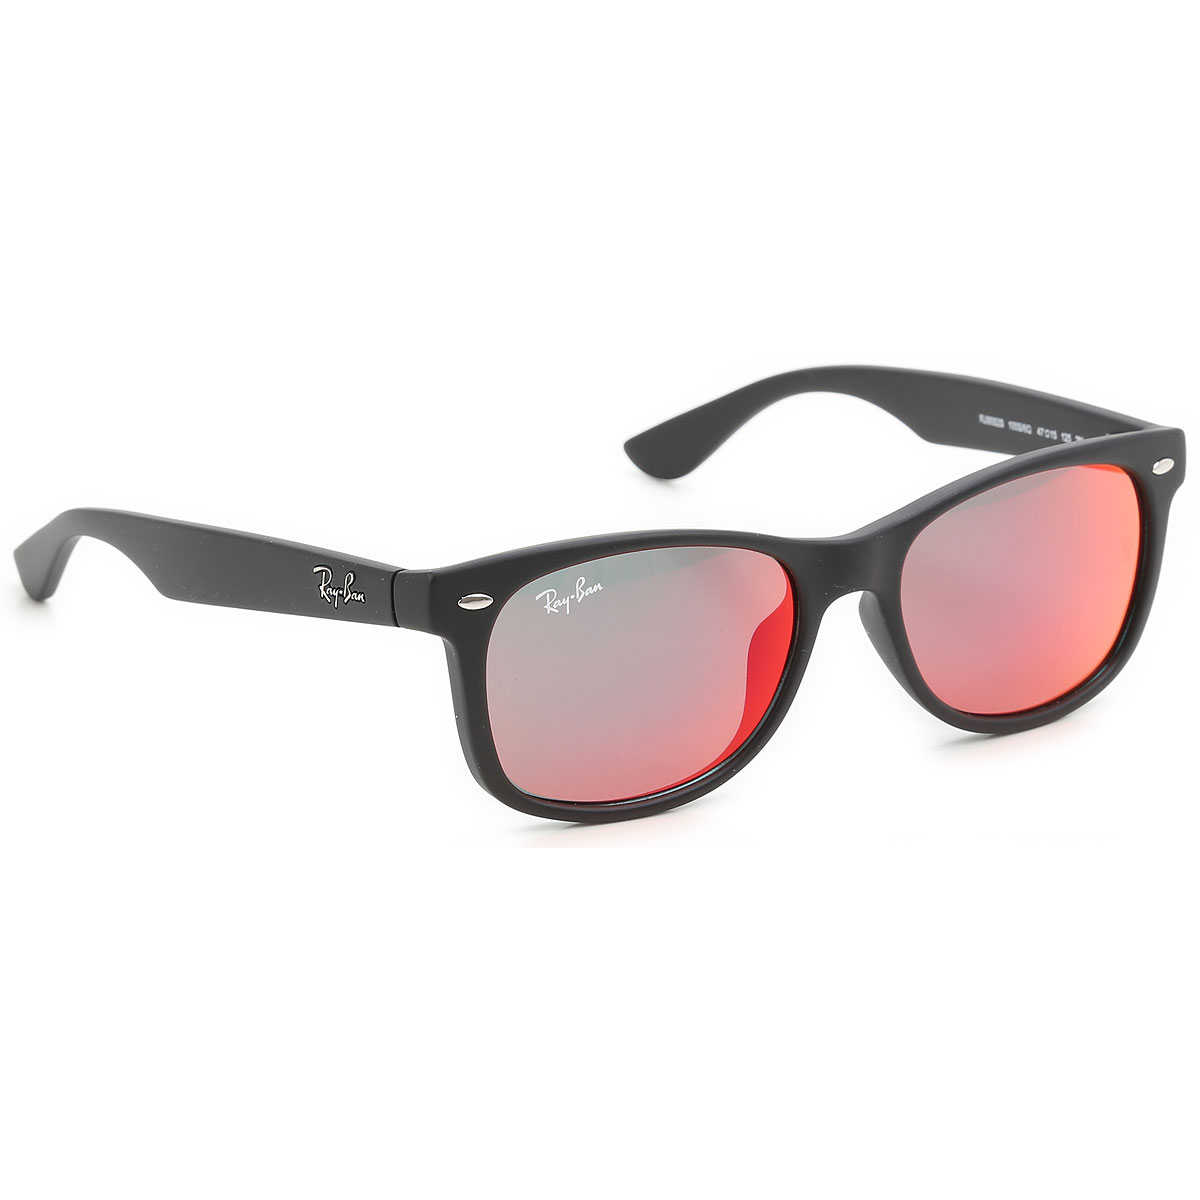 Image of Ray Ban Junior Kids Sunglasses for Boys On Sale, 2017